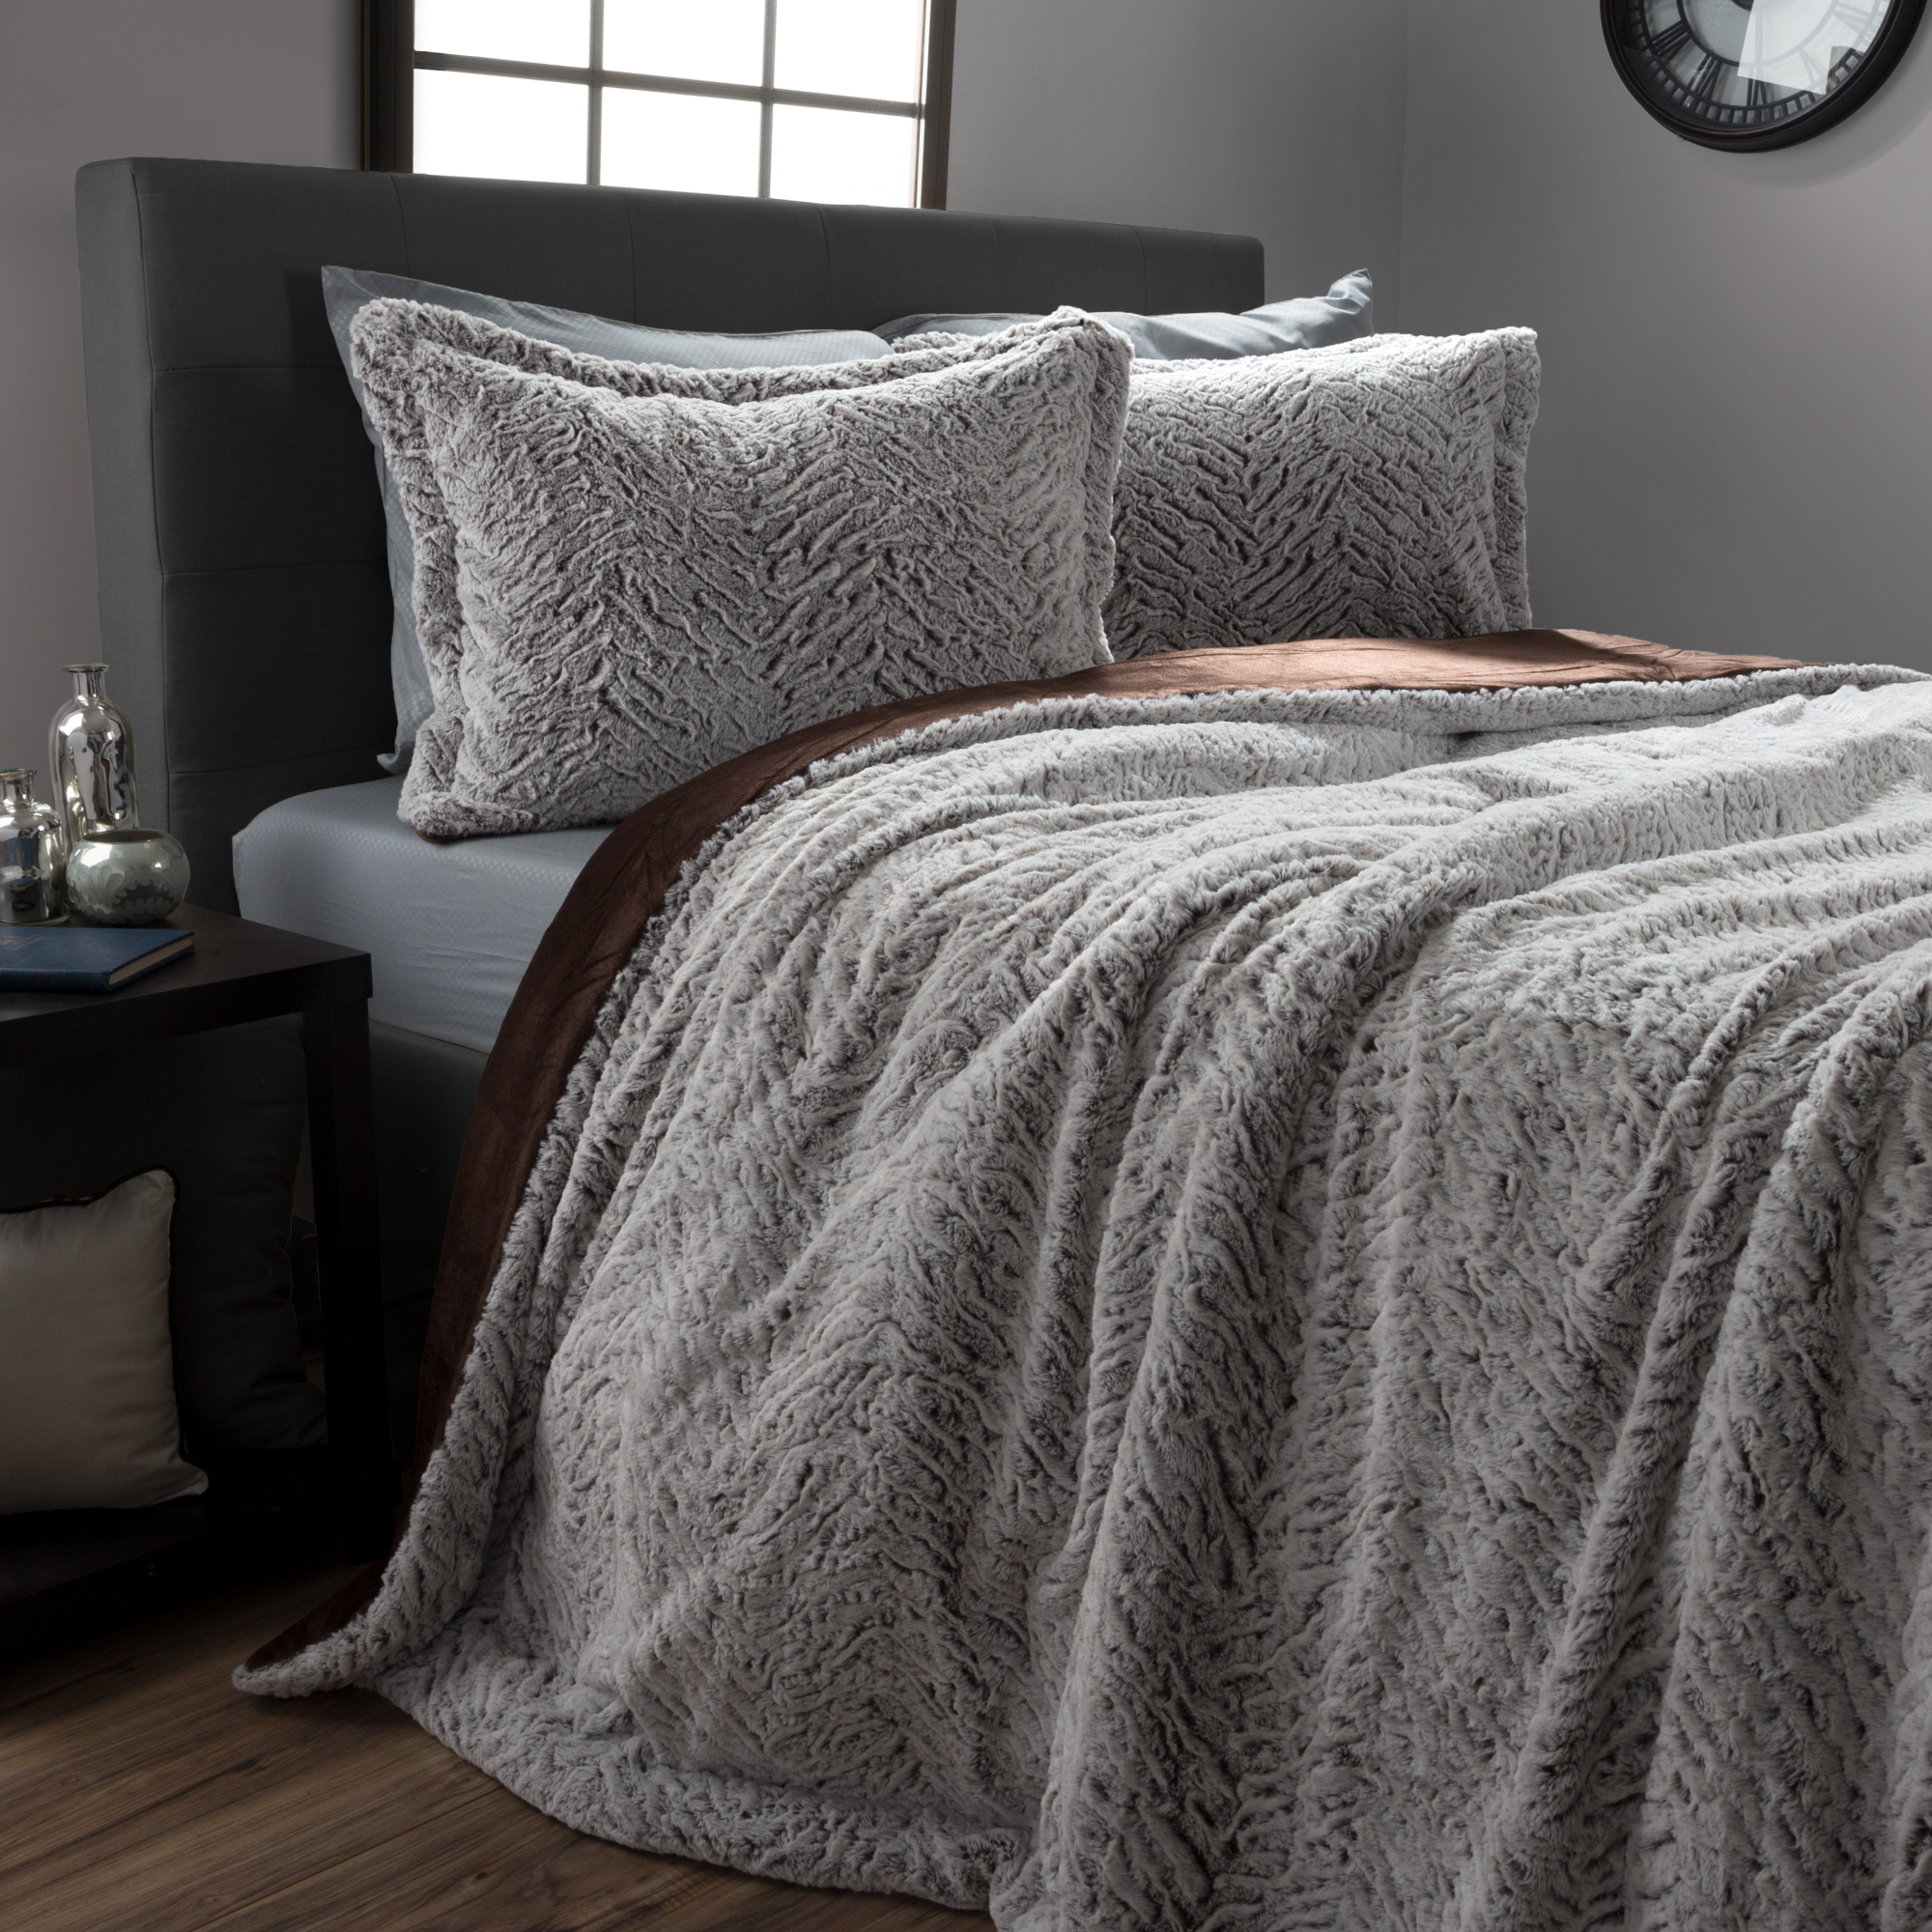 Faux Fur Comforter Set, 3 Piece Full/Queen Comforter and Sham Set